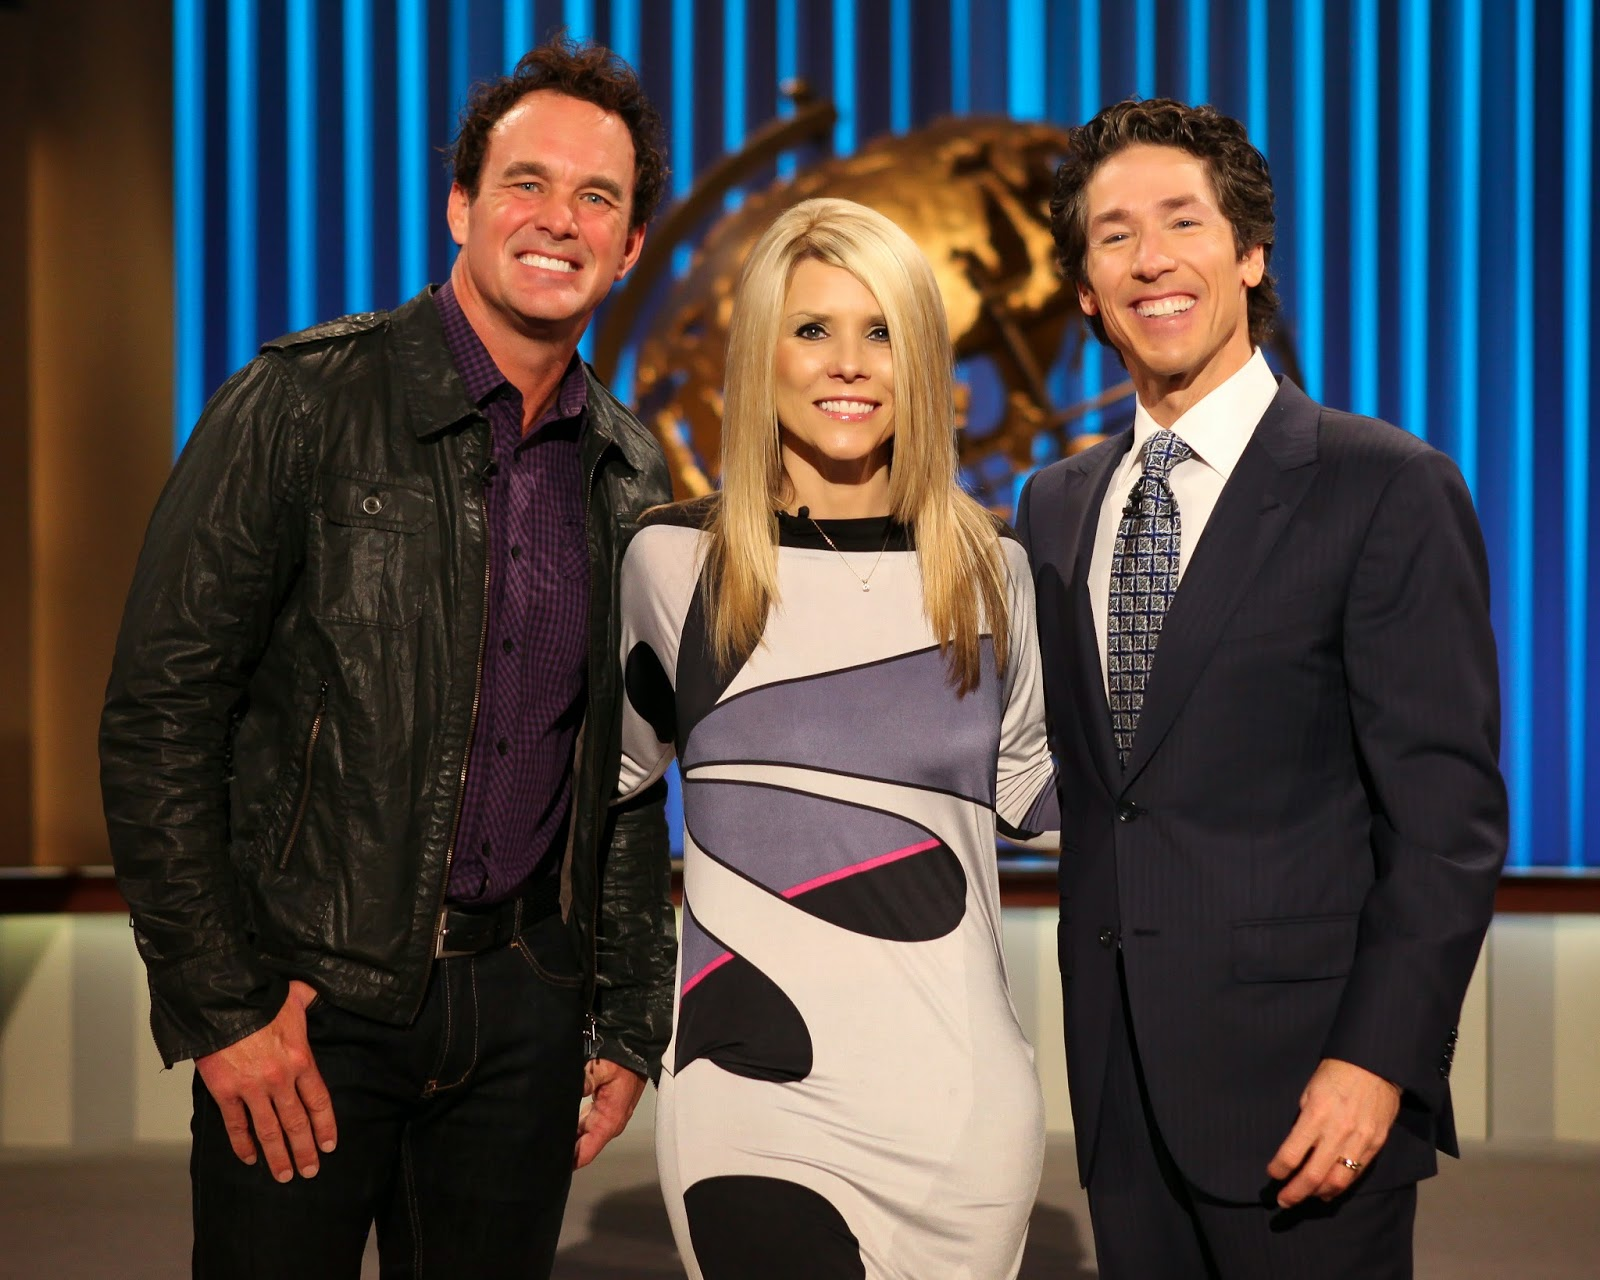 Joel Osteen Son And Daughter Partnered with joel osteen